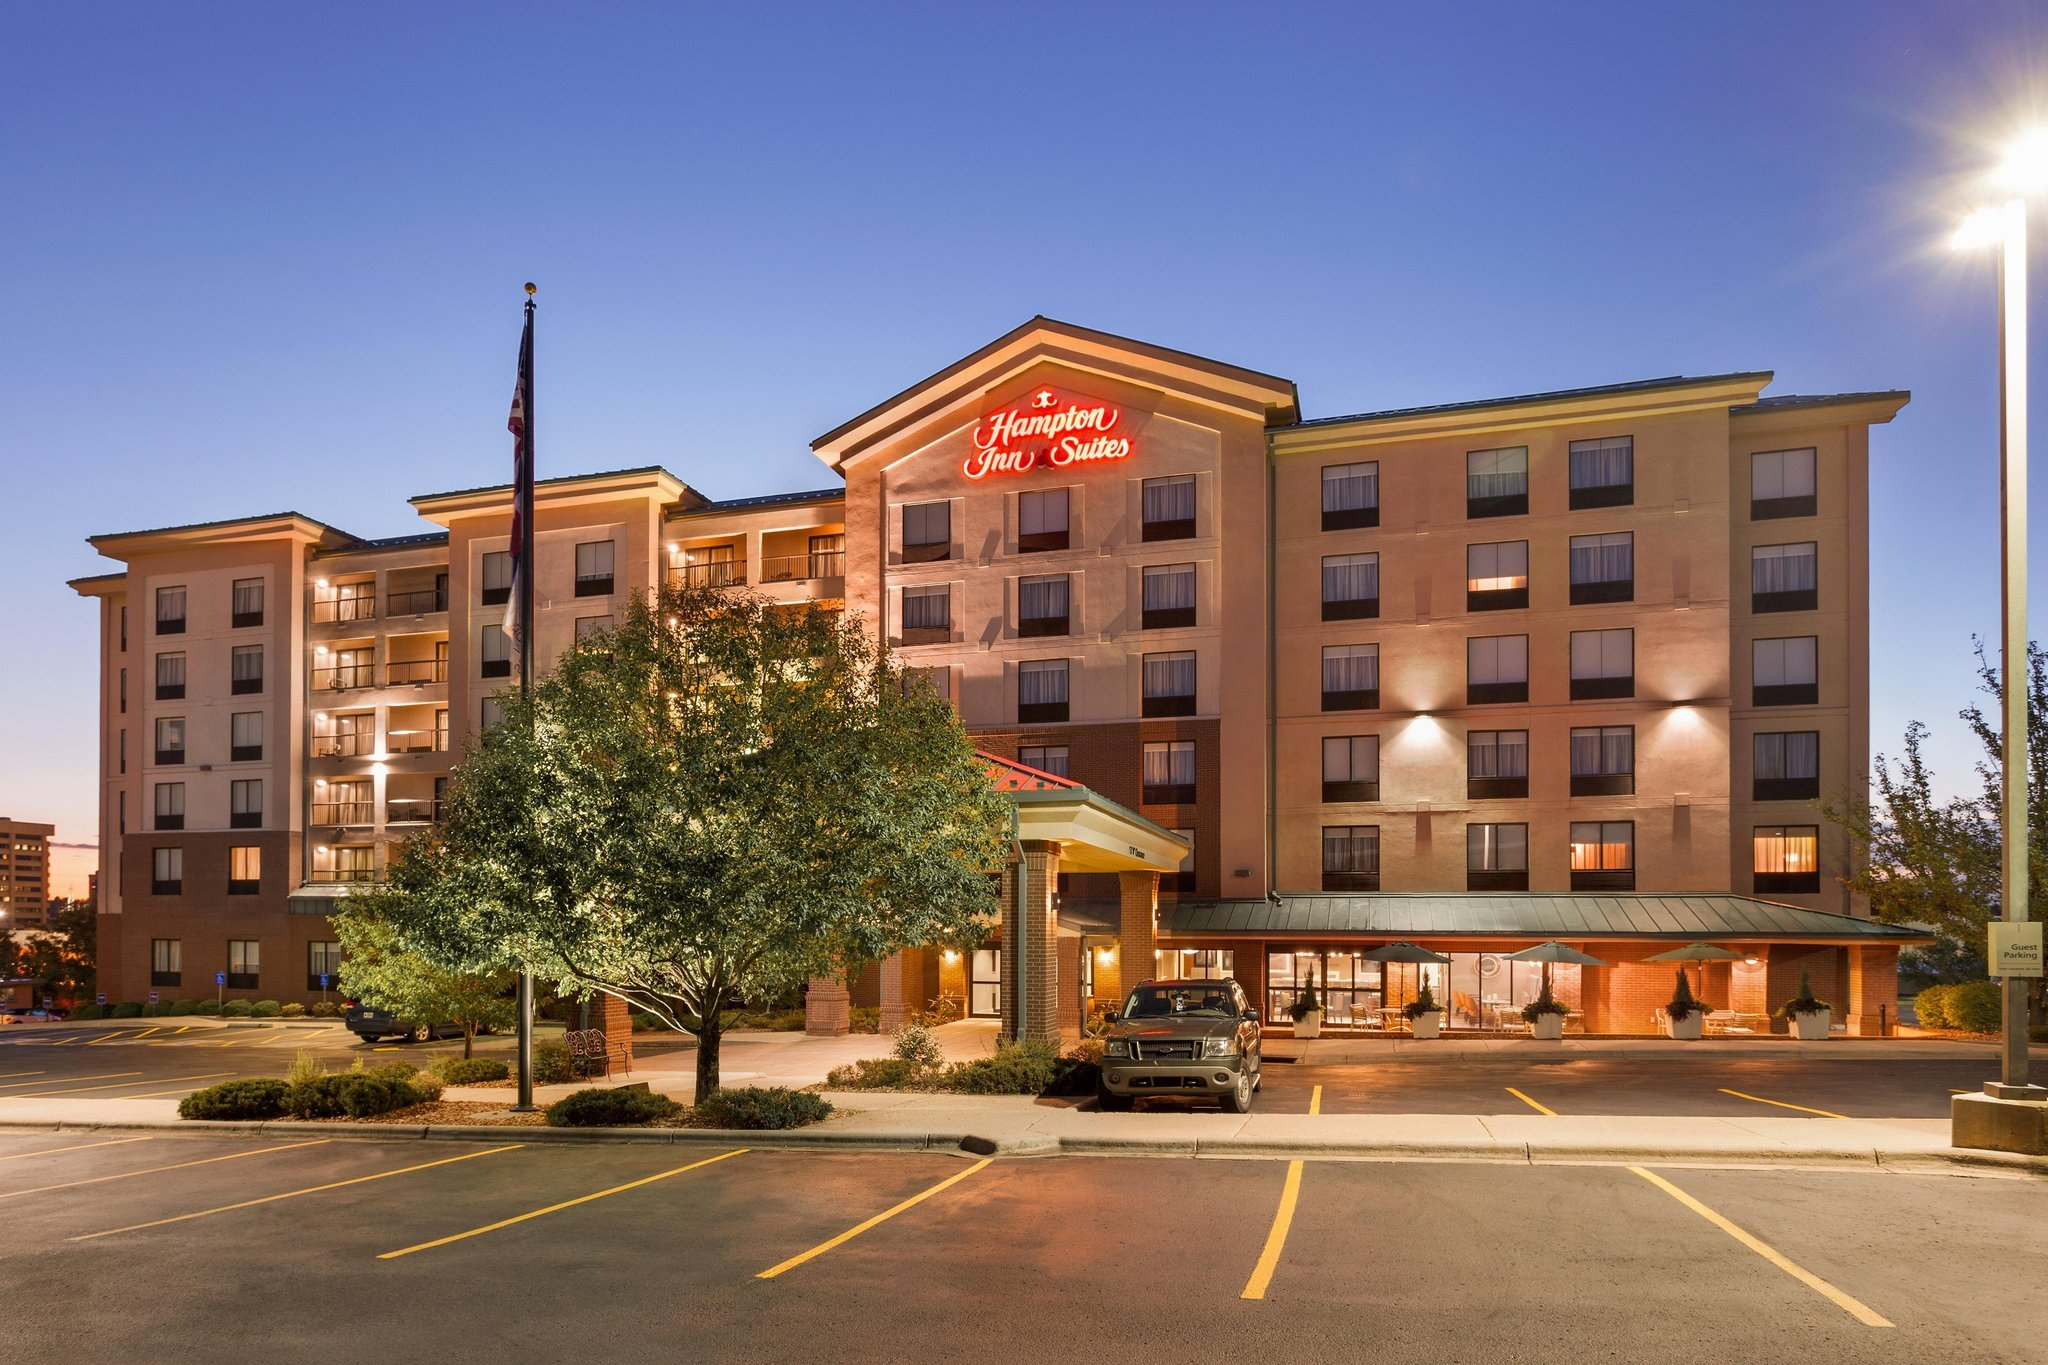 Hampton Inn and Suites Denver-Cherry Creek